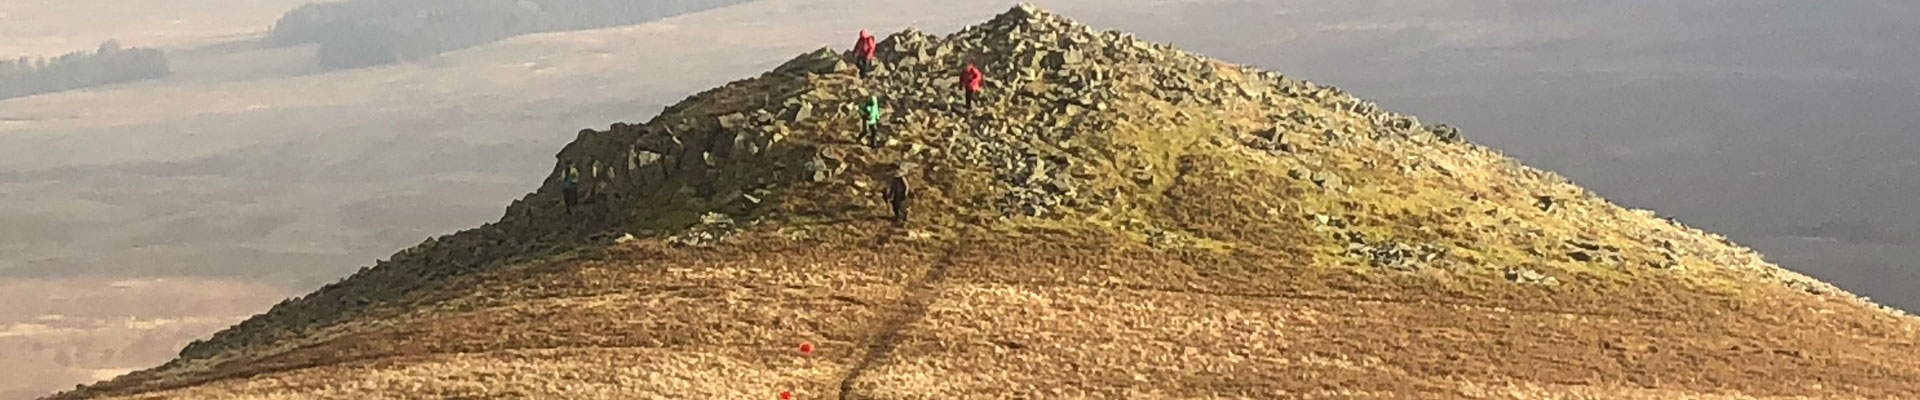 Clough Head Fell Race 2018